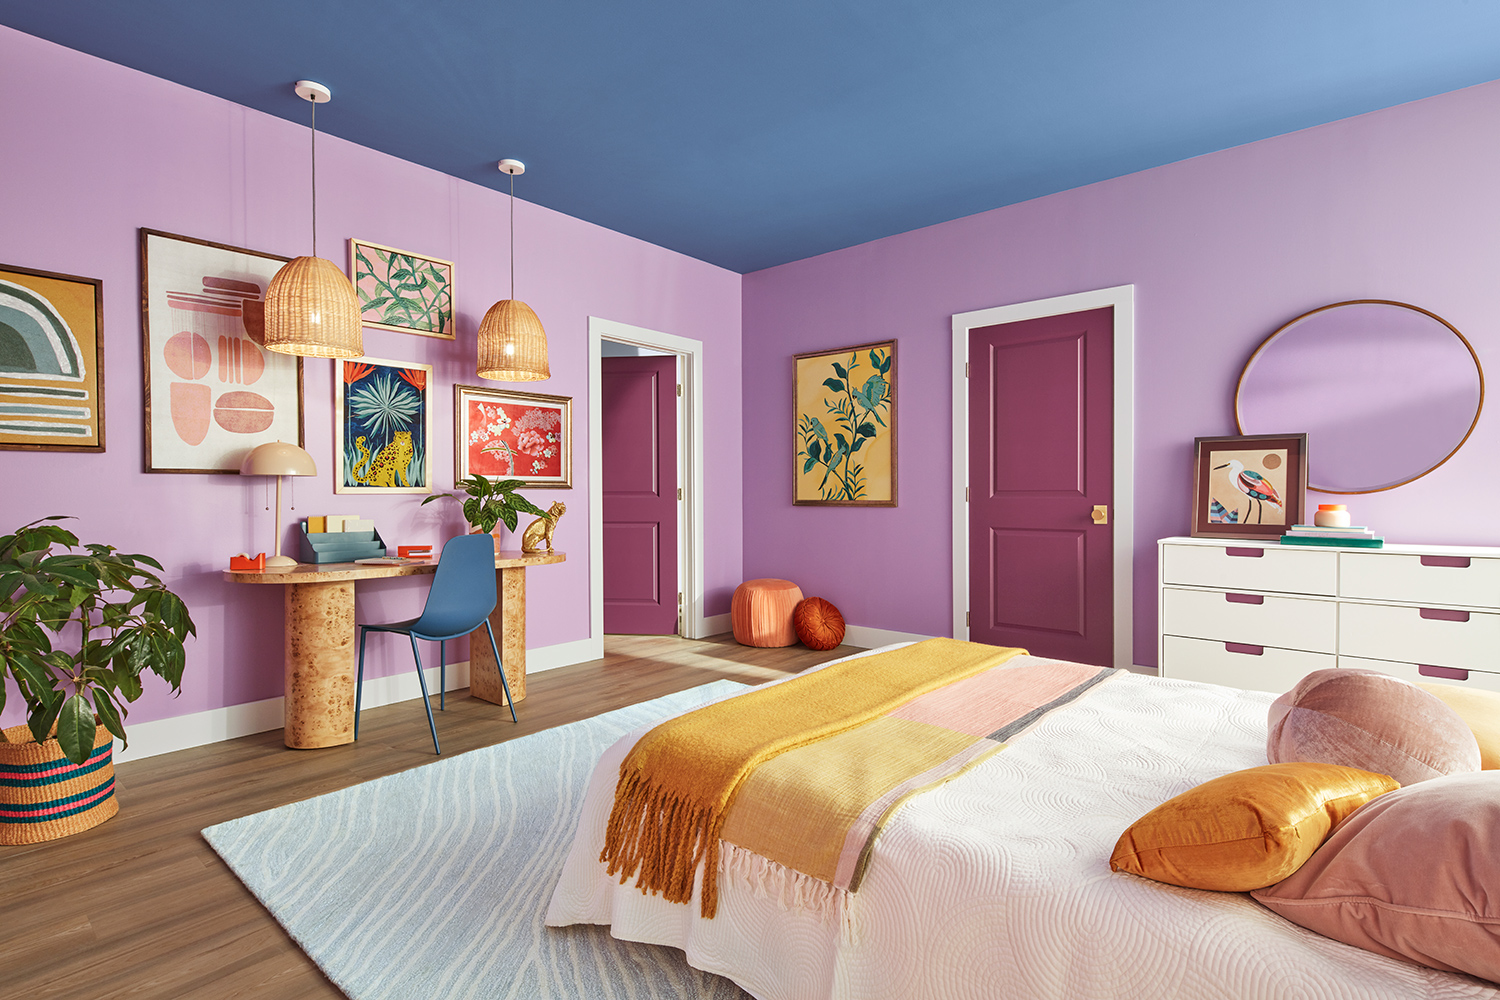 Bedroom image with colorful eclectic wall decor, pants and wicker light fixtures. Walls painted Novel Lilac SW 6839, Ceiling painted Perfect Periwinkle SW 9065, Doors painted Juneberry SW 6573